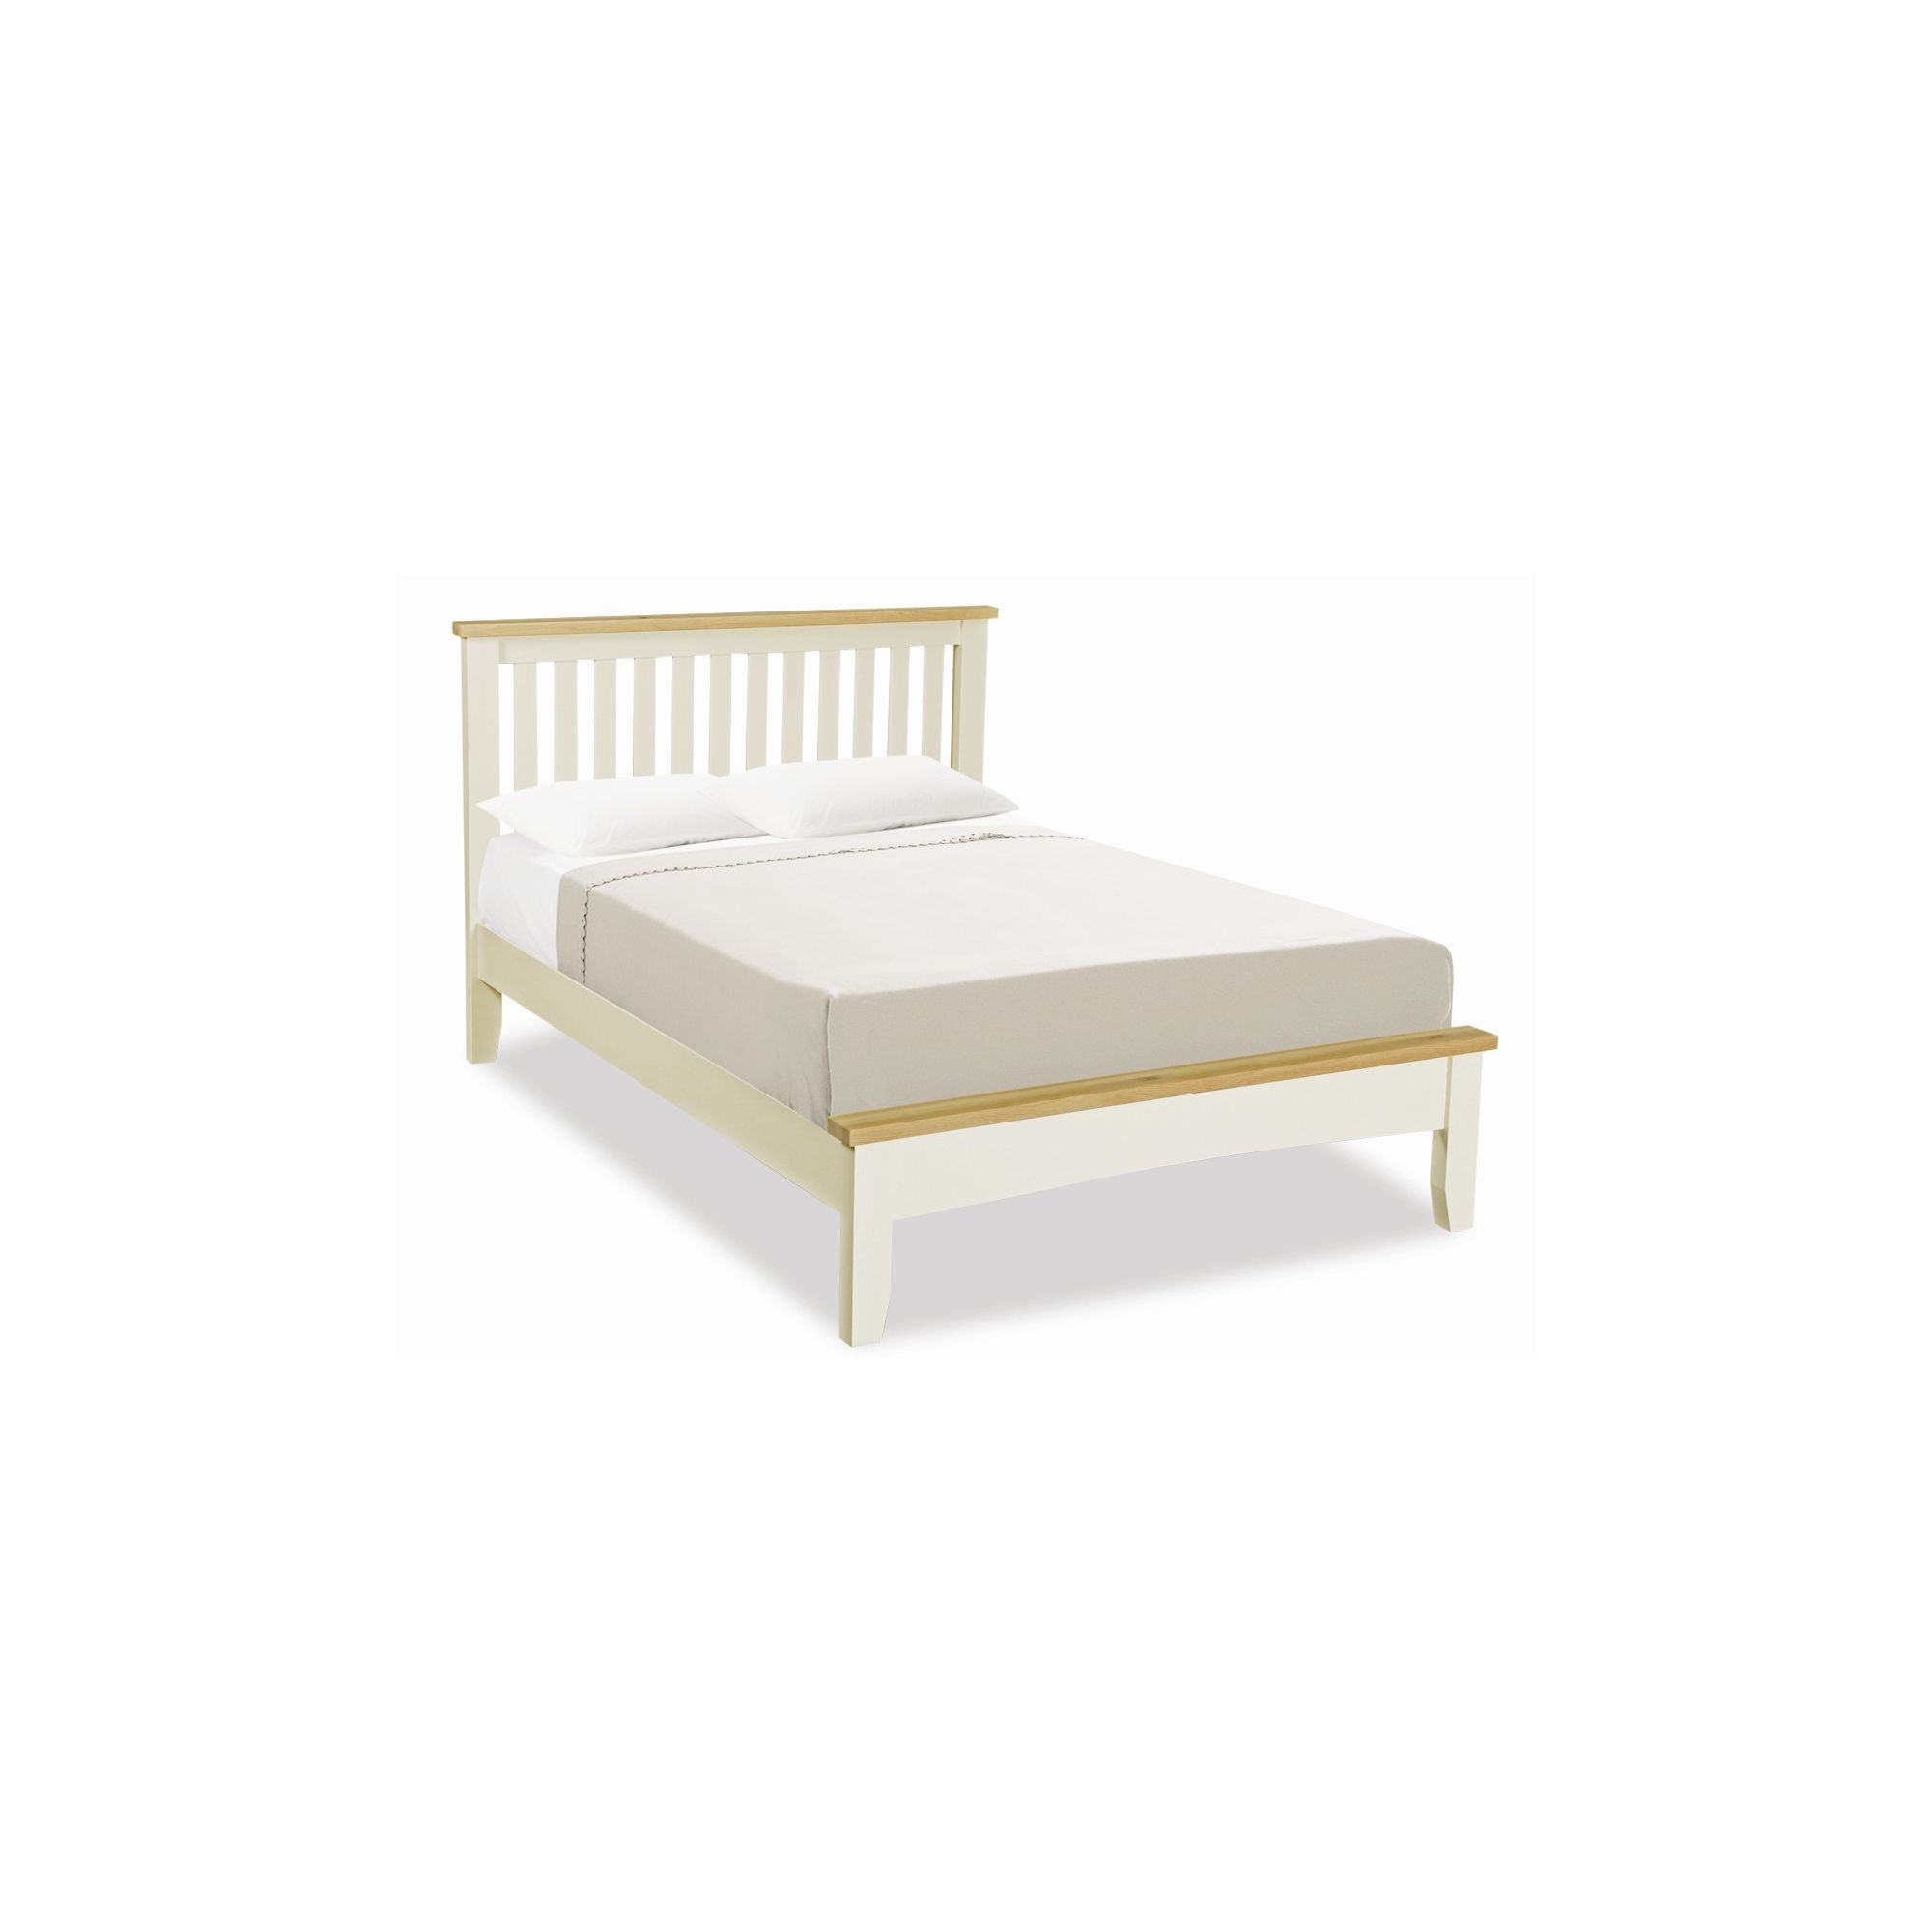 Alterton Furniture St. Ives Bed - Single at Tescos Direct